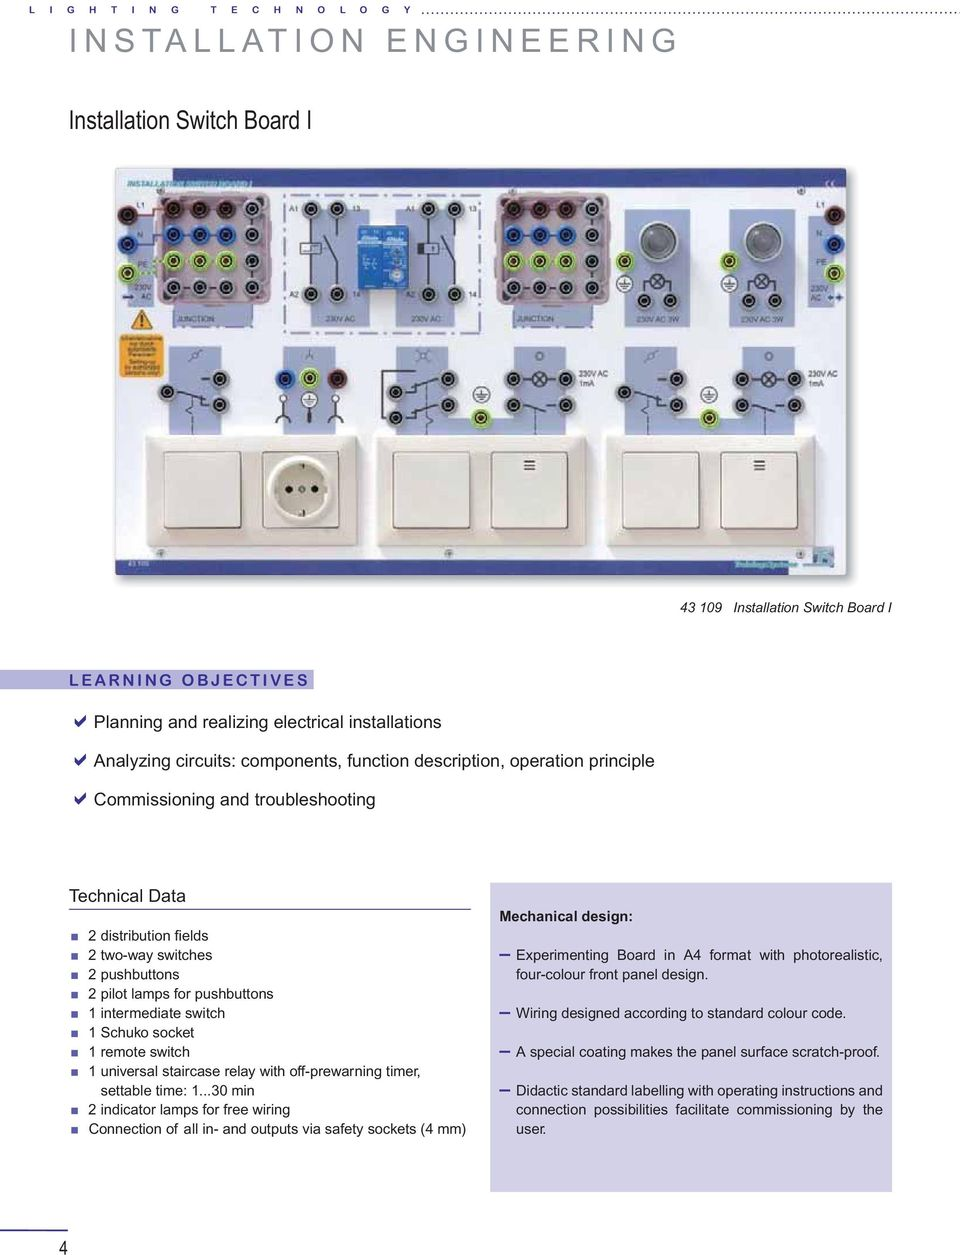 Elabotrainingssysteme Aus Und Weiterbildung Gmbh Installation Two Way Switch With Indicator Pushbuttons 1 Intermediate Schuko Socket Remote Universal Staircase Relay Off